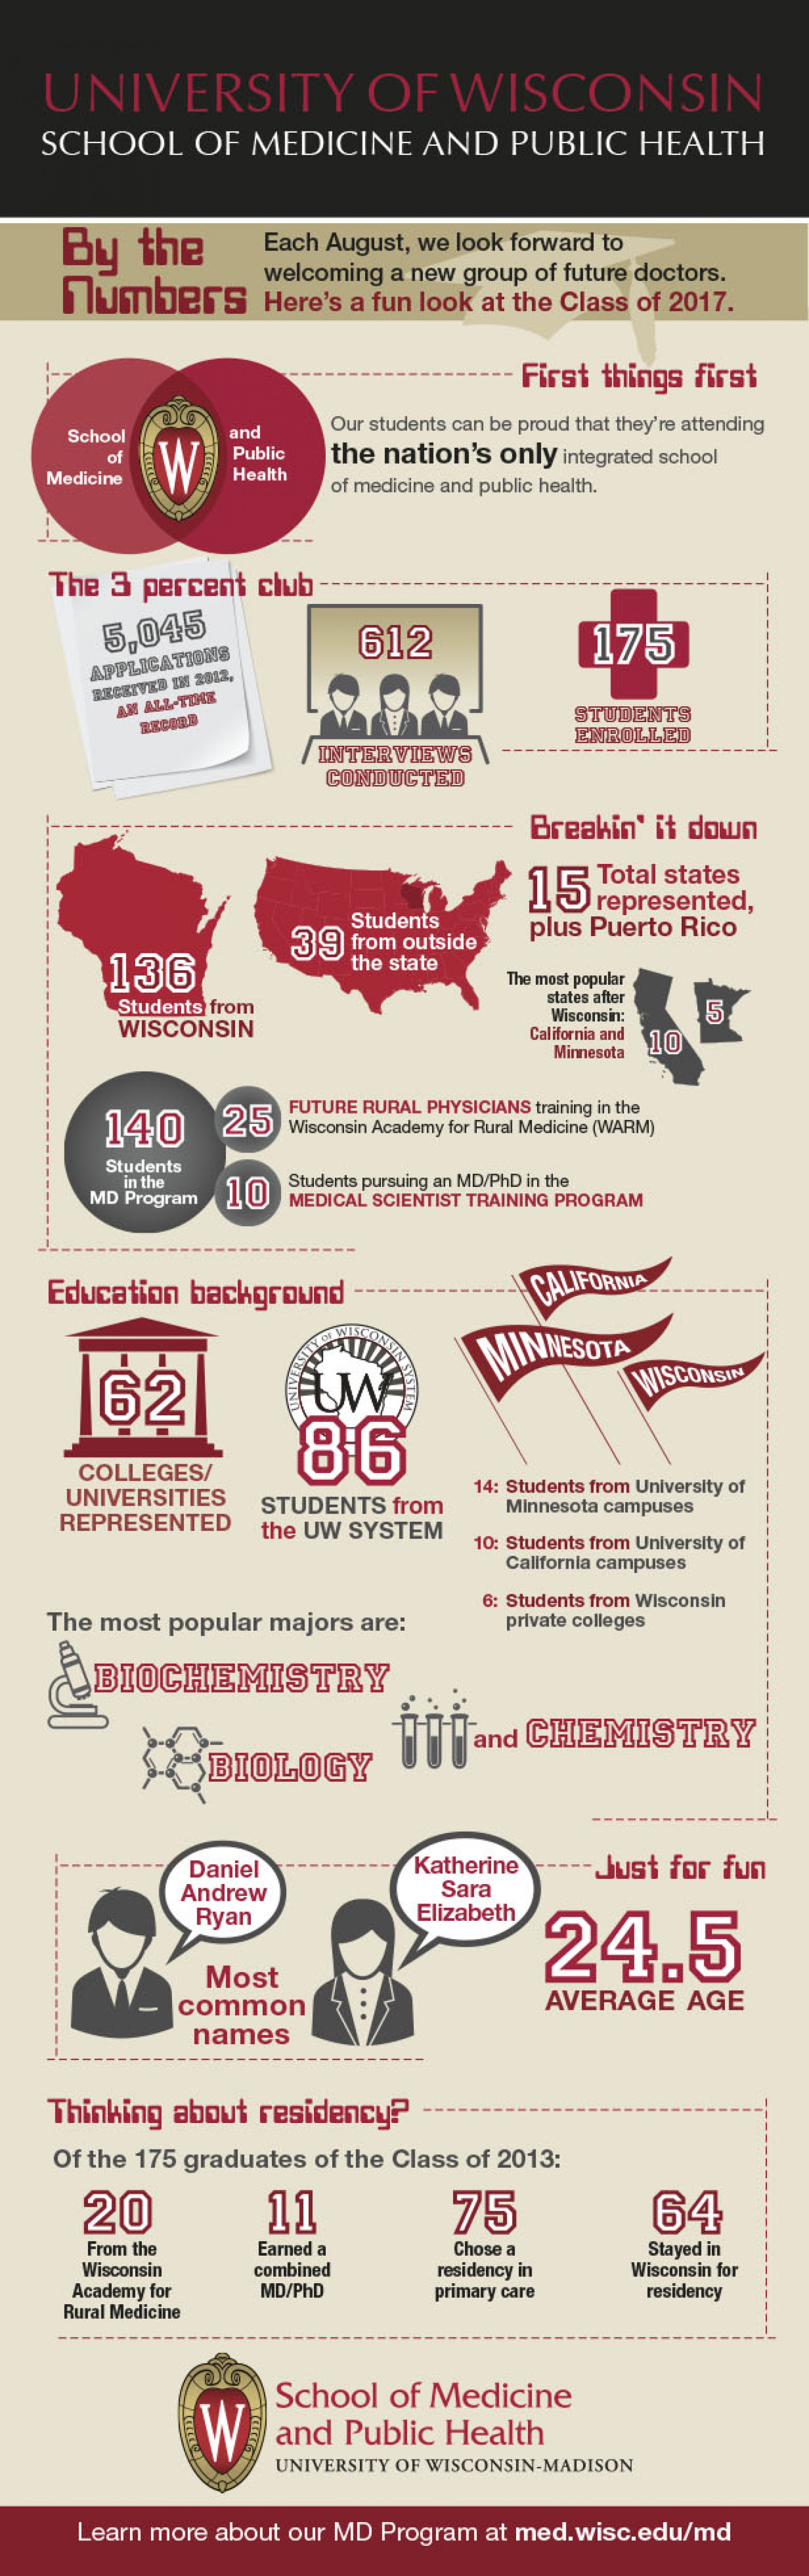 University of Wisconsin School of Medicine and Public Health MD Class of 2017 By the Numbers  Infographic